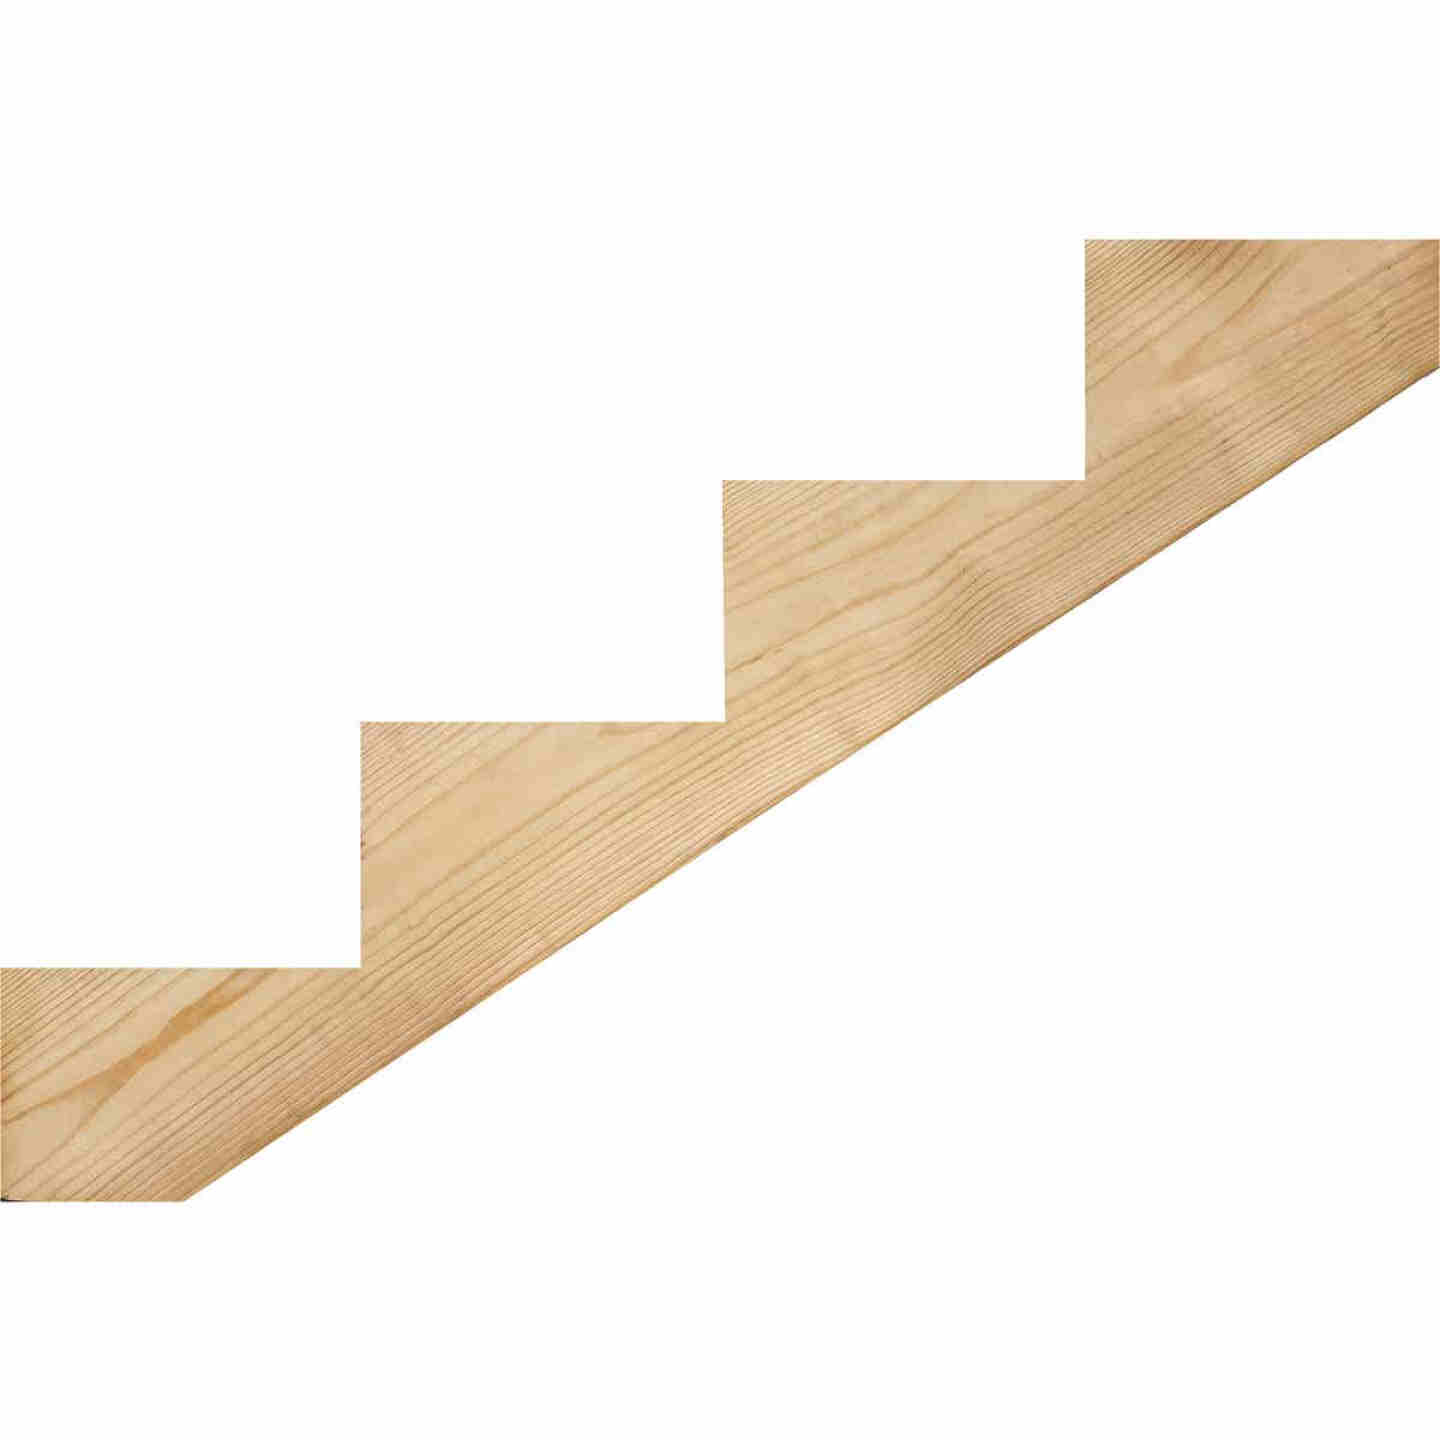 Kitzmans 2 In. x 10 In. 4-Step Treated Precut Stair Stringer Image 1